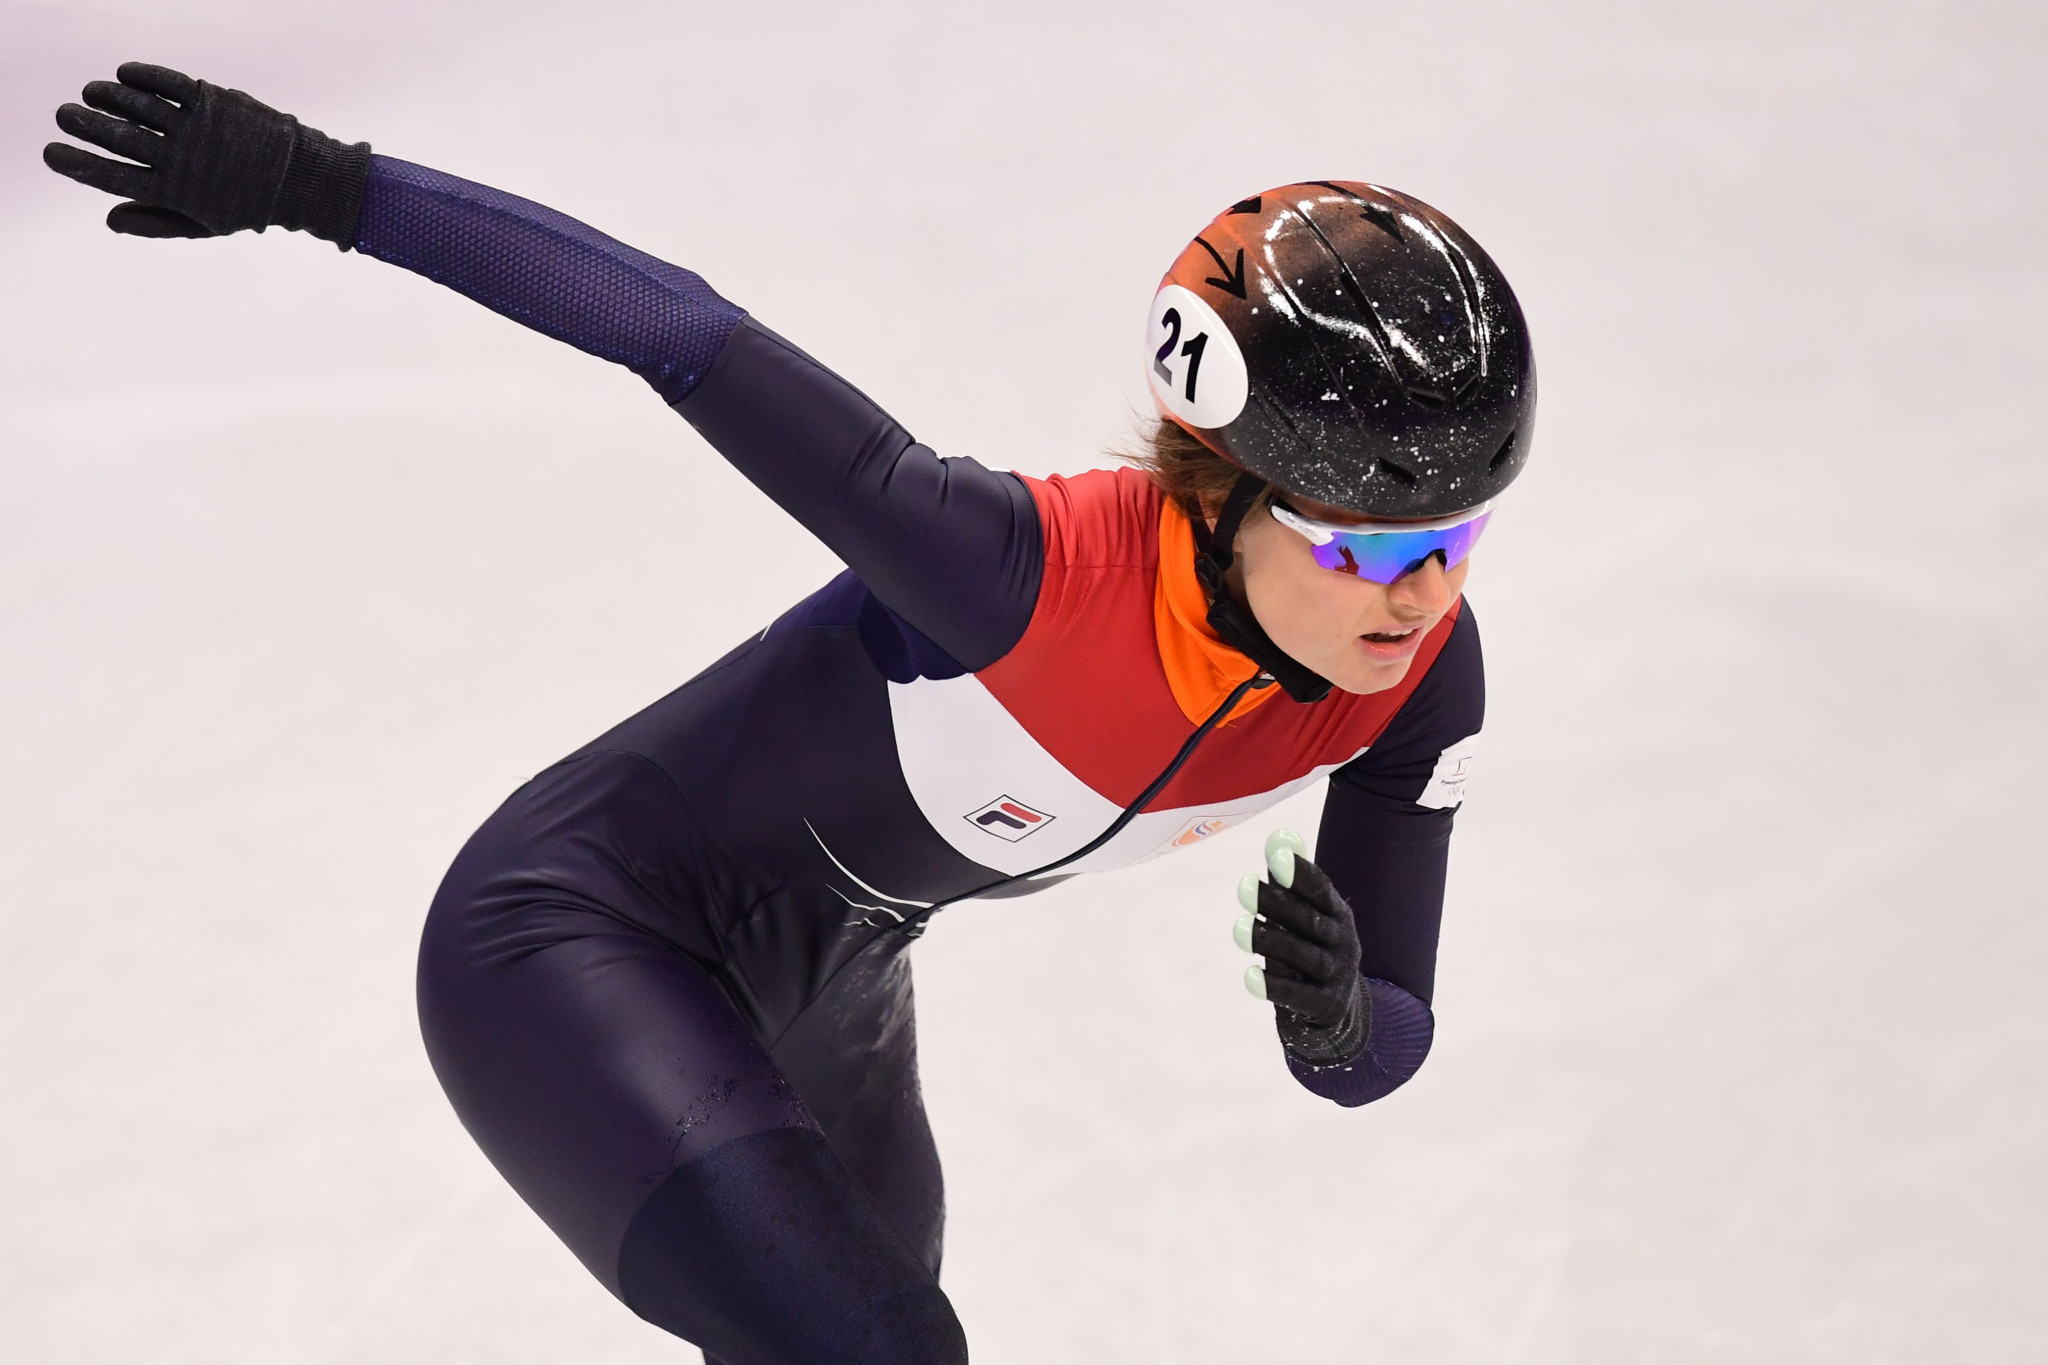 Yara van Kerkhof clinched an emotional medal for The Netherlands ©Getty Images